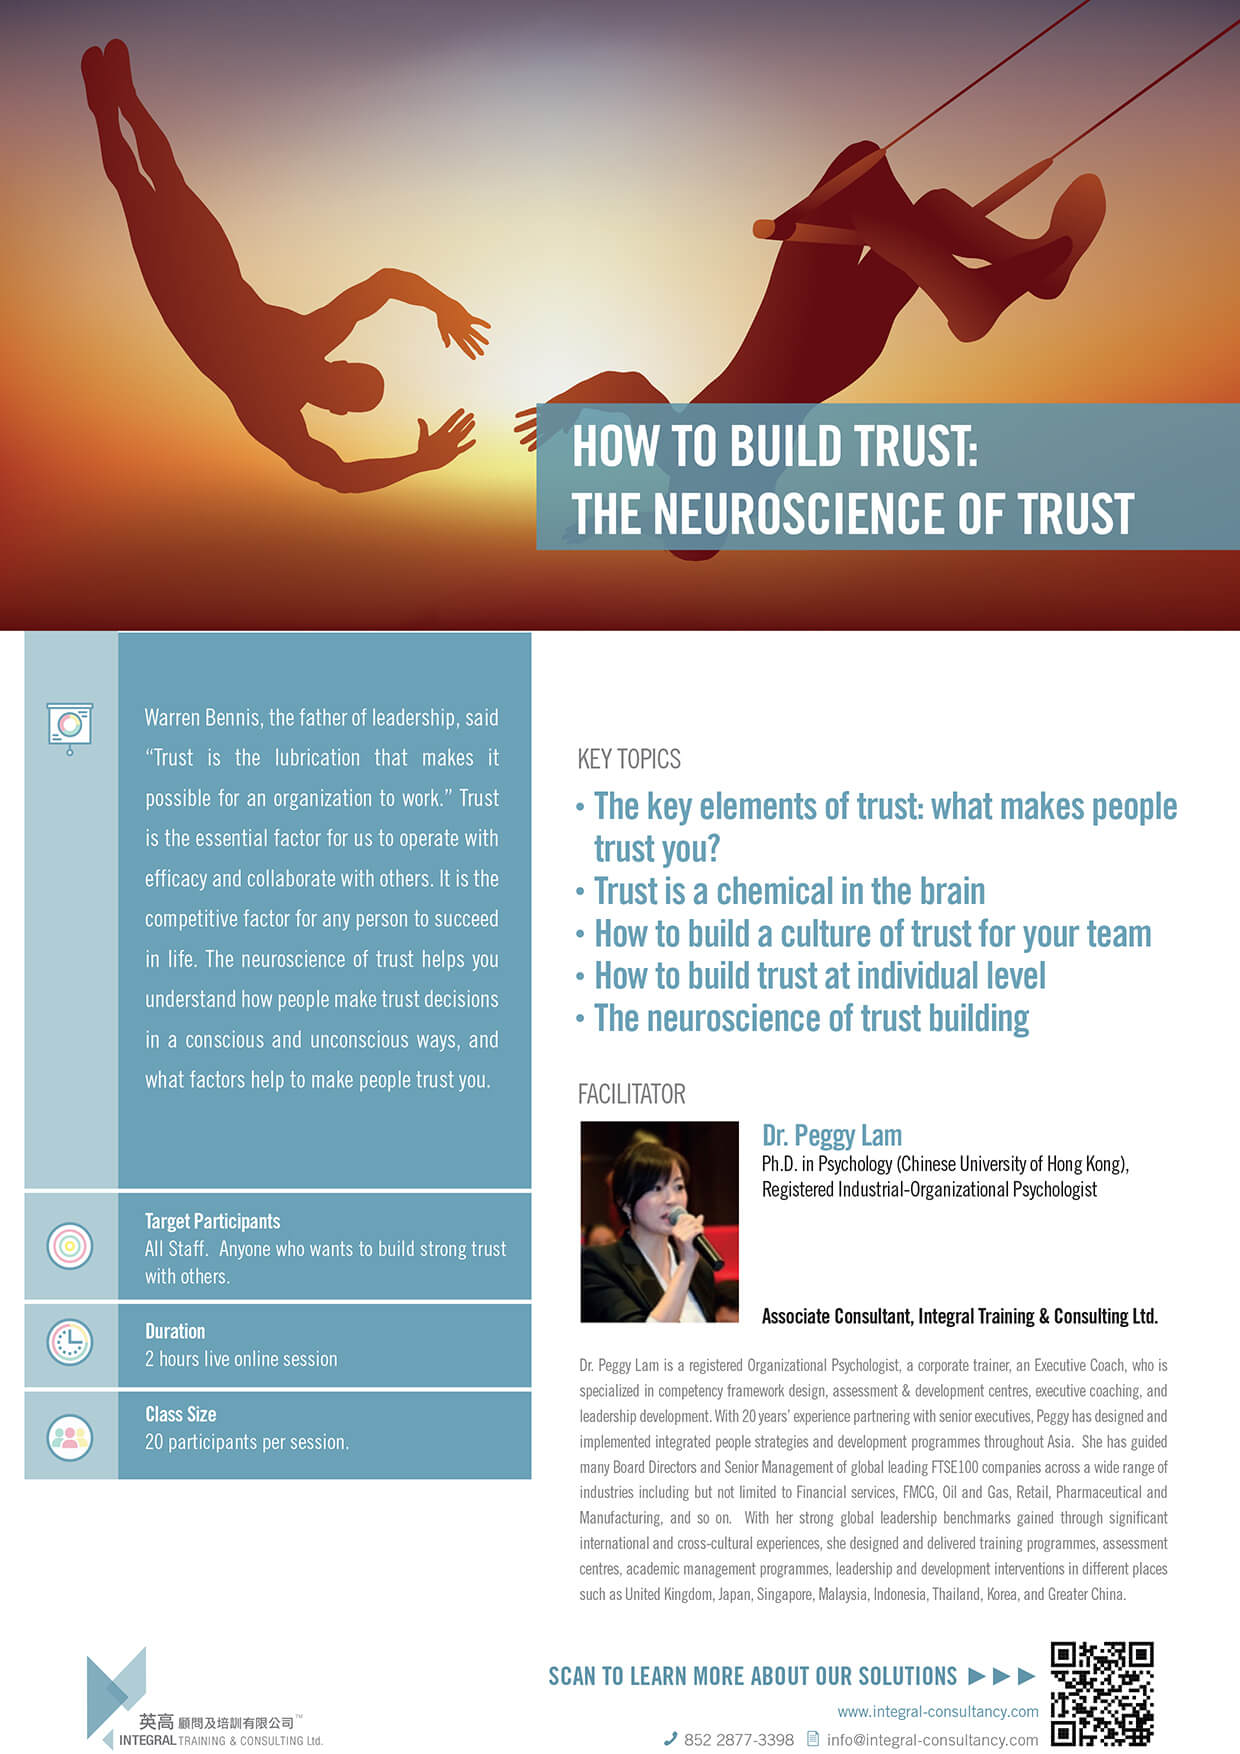 How to Build Trust: The Neuroscience of Trust